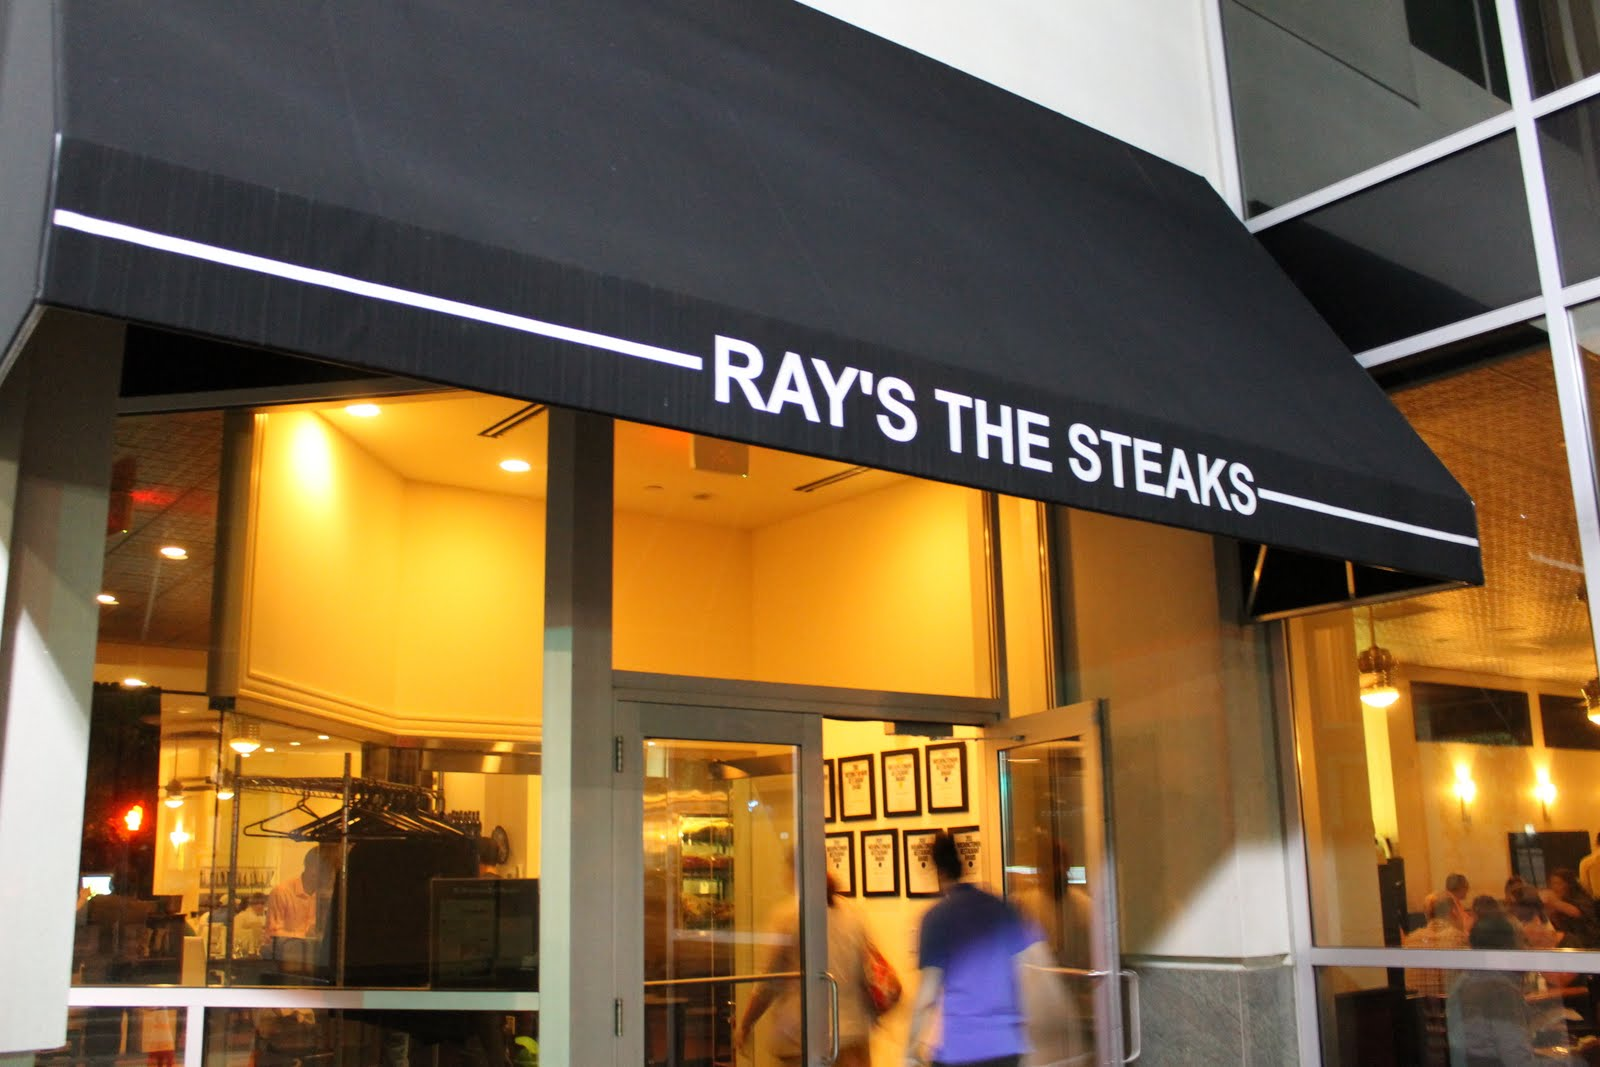 "Exterior photo of Ray's Steaks restaurant in Arlington, VA. Rays the Steaks, 2300 Wilson Boulevard, makes a return from its 2013 appearance on the Washingtonian's ""Very Best"" list.  Seven total Arlington restaurants made the annual 100 Very Best Restaurants list of 2014. Joining Rays the Steaks, was Liam LaCivita's, Lyon Hall, Liberty Tavern and Ray's to the Third. Ray's to the Third just recently opened its doors in Rosslyn just a few short blocks away from Rays the Steaks, which is located at 2300 Wilson Boulevard.  According to the magazine, the consistency of Rays the Steaks kitchen and quality of the beef hasn't changed from last year's award-winning form. Their pepper-crusted filet mignon and mammoth cowboy-cut rib eye appear to be a guaranteed treat for 2015."